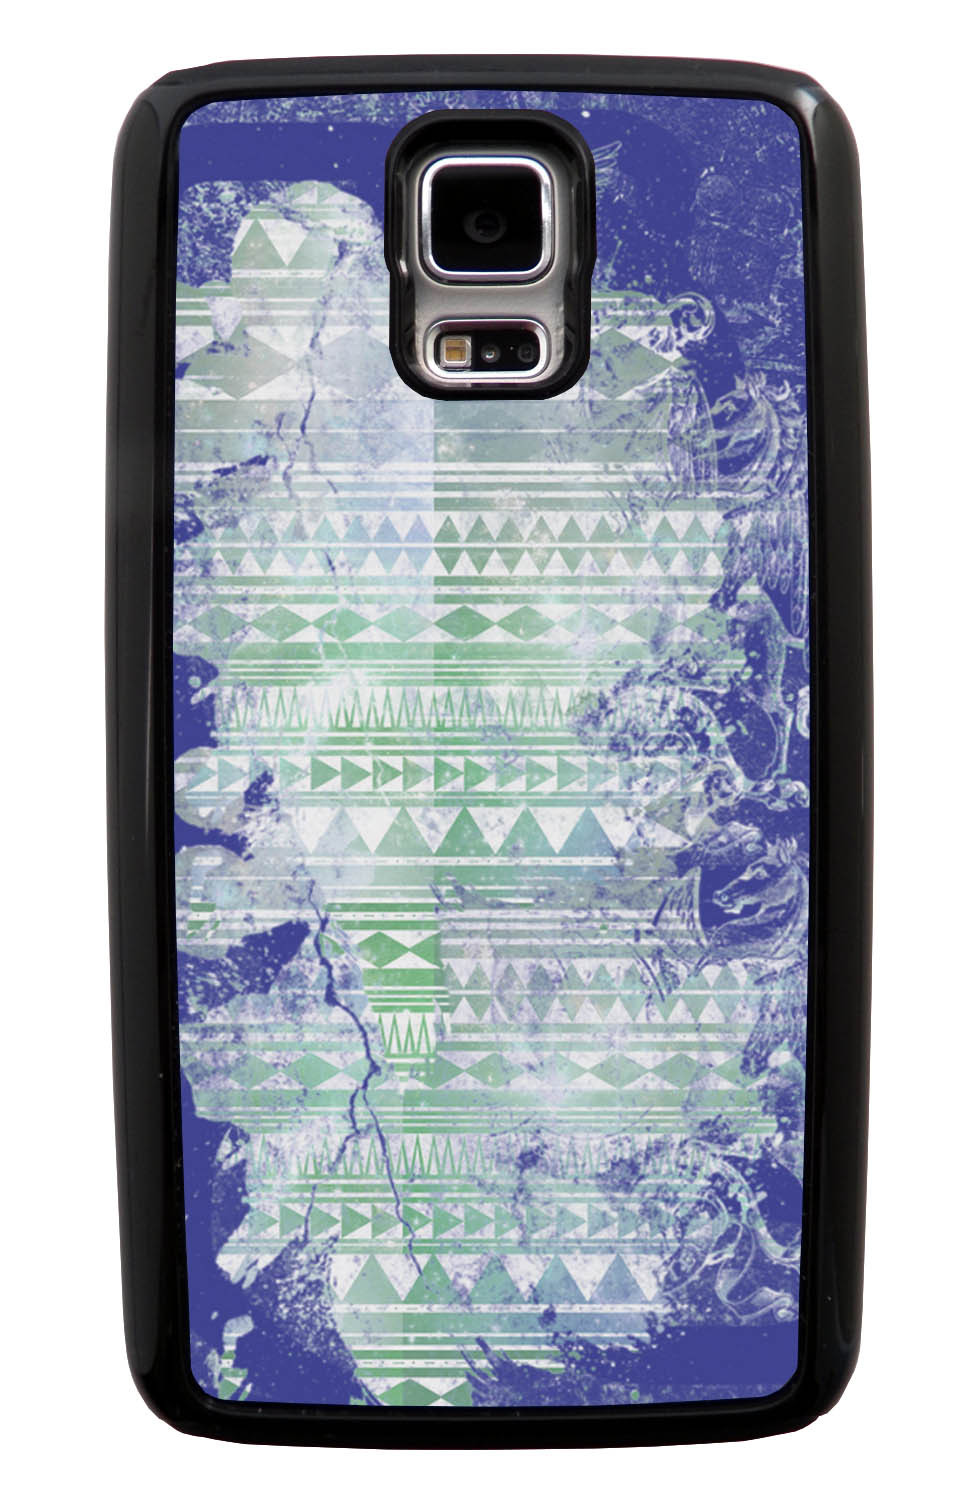 Samsung Galaxy S5 / SV Aztec Case - Purple and Off-White Paint with Green - Paint Splatter Overlay - Black Tough Hybrid Case